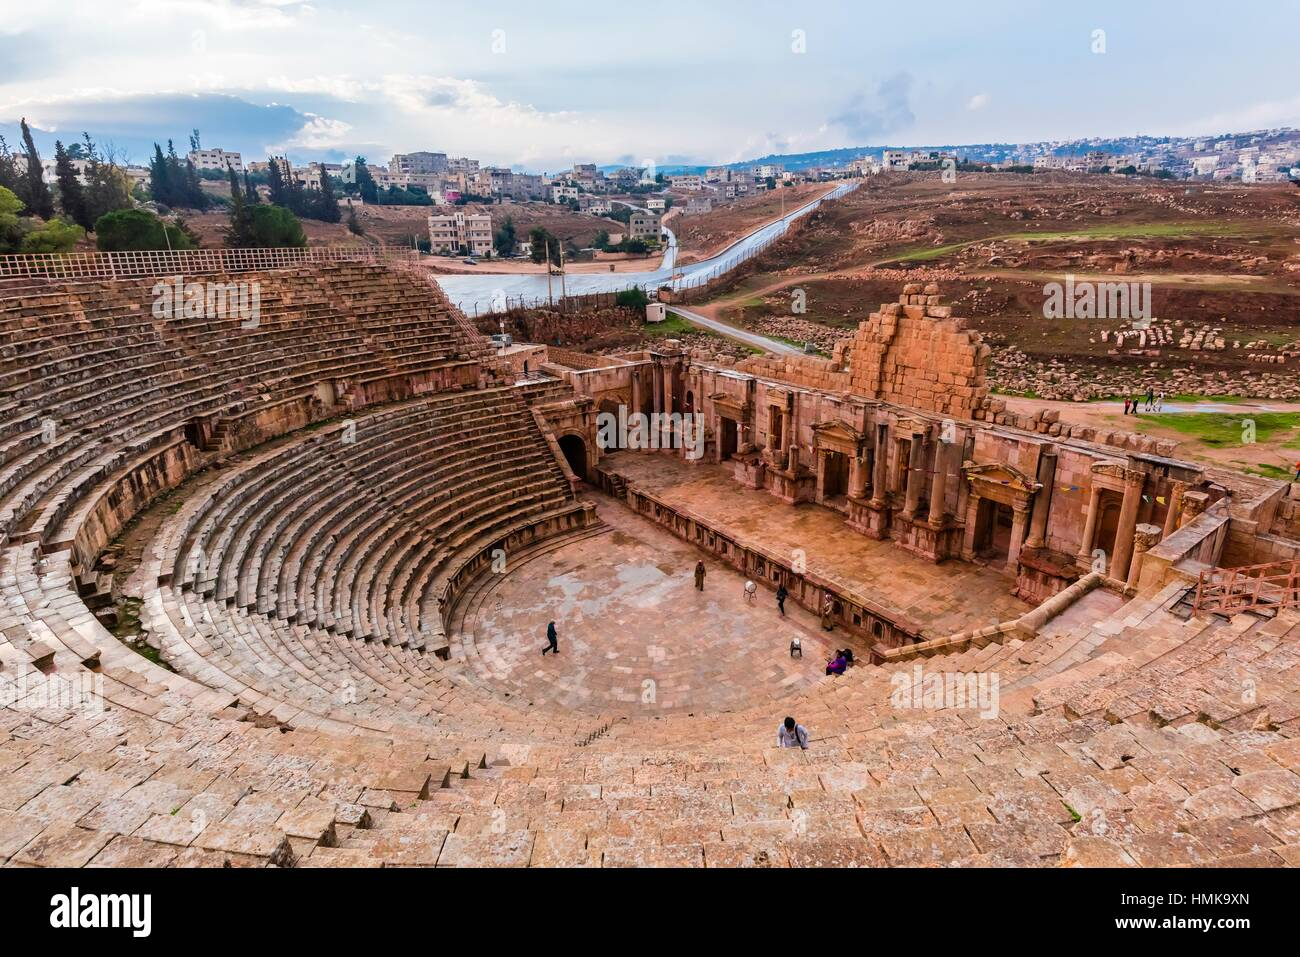 South Theatre, built in 90 - 92 AD, with 32 rows of seats for 5,000 spectators, ancient Roman city of Jerash, Jordan. - Stock Image